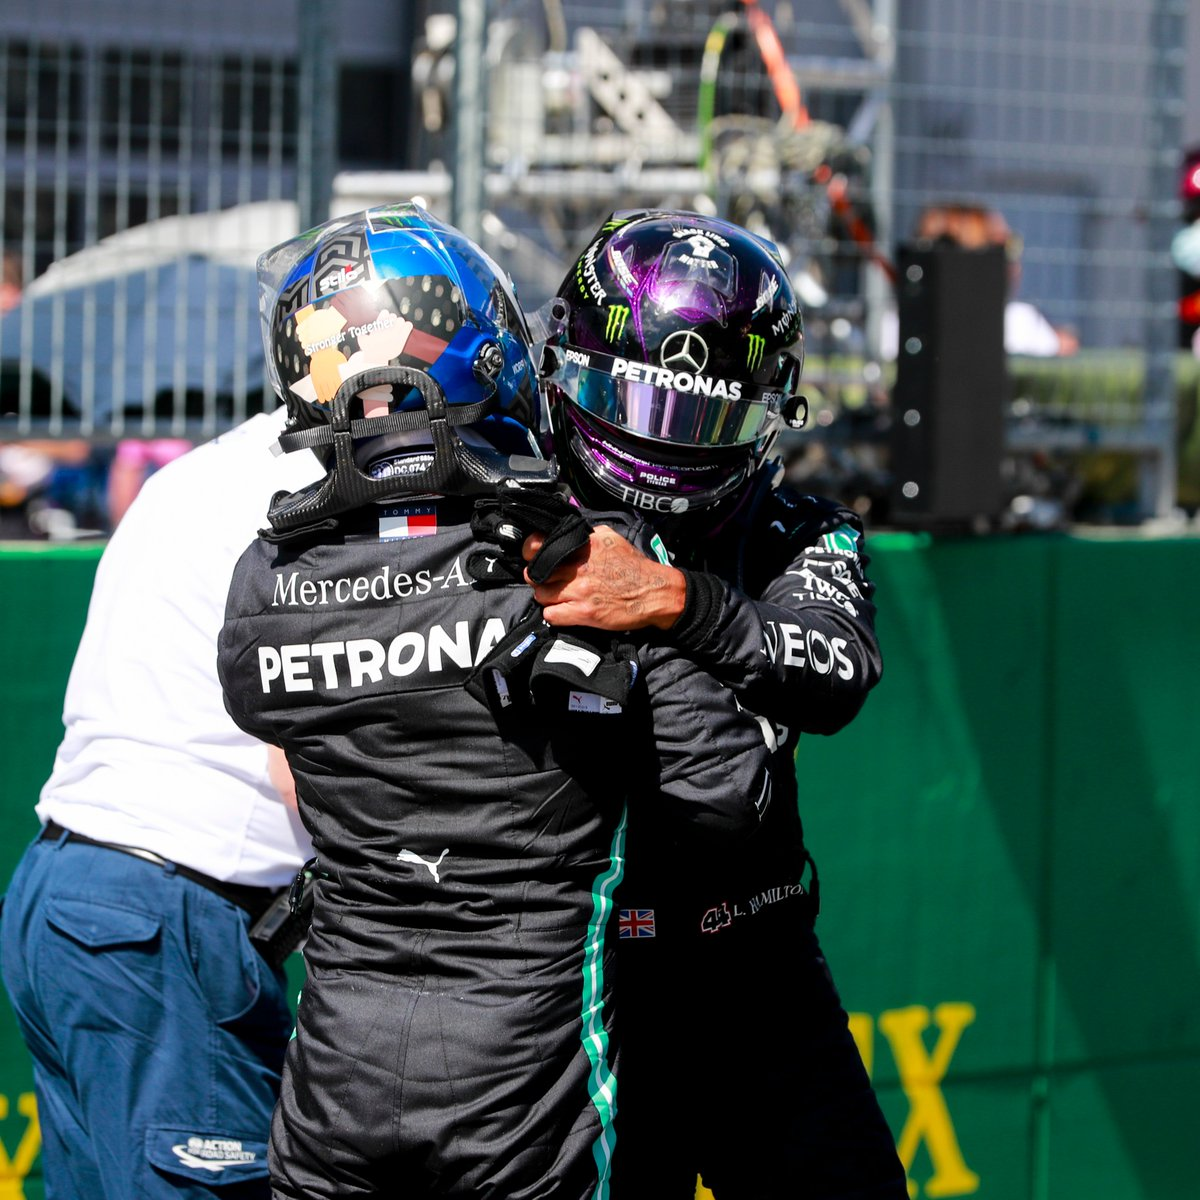 This wholesome content 🥰 #AustrianGP https://t.co/eLCtpreAkW